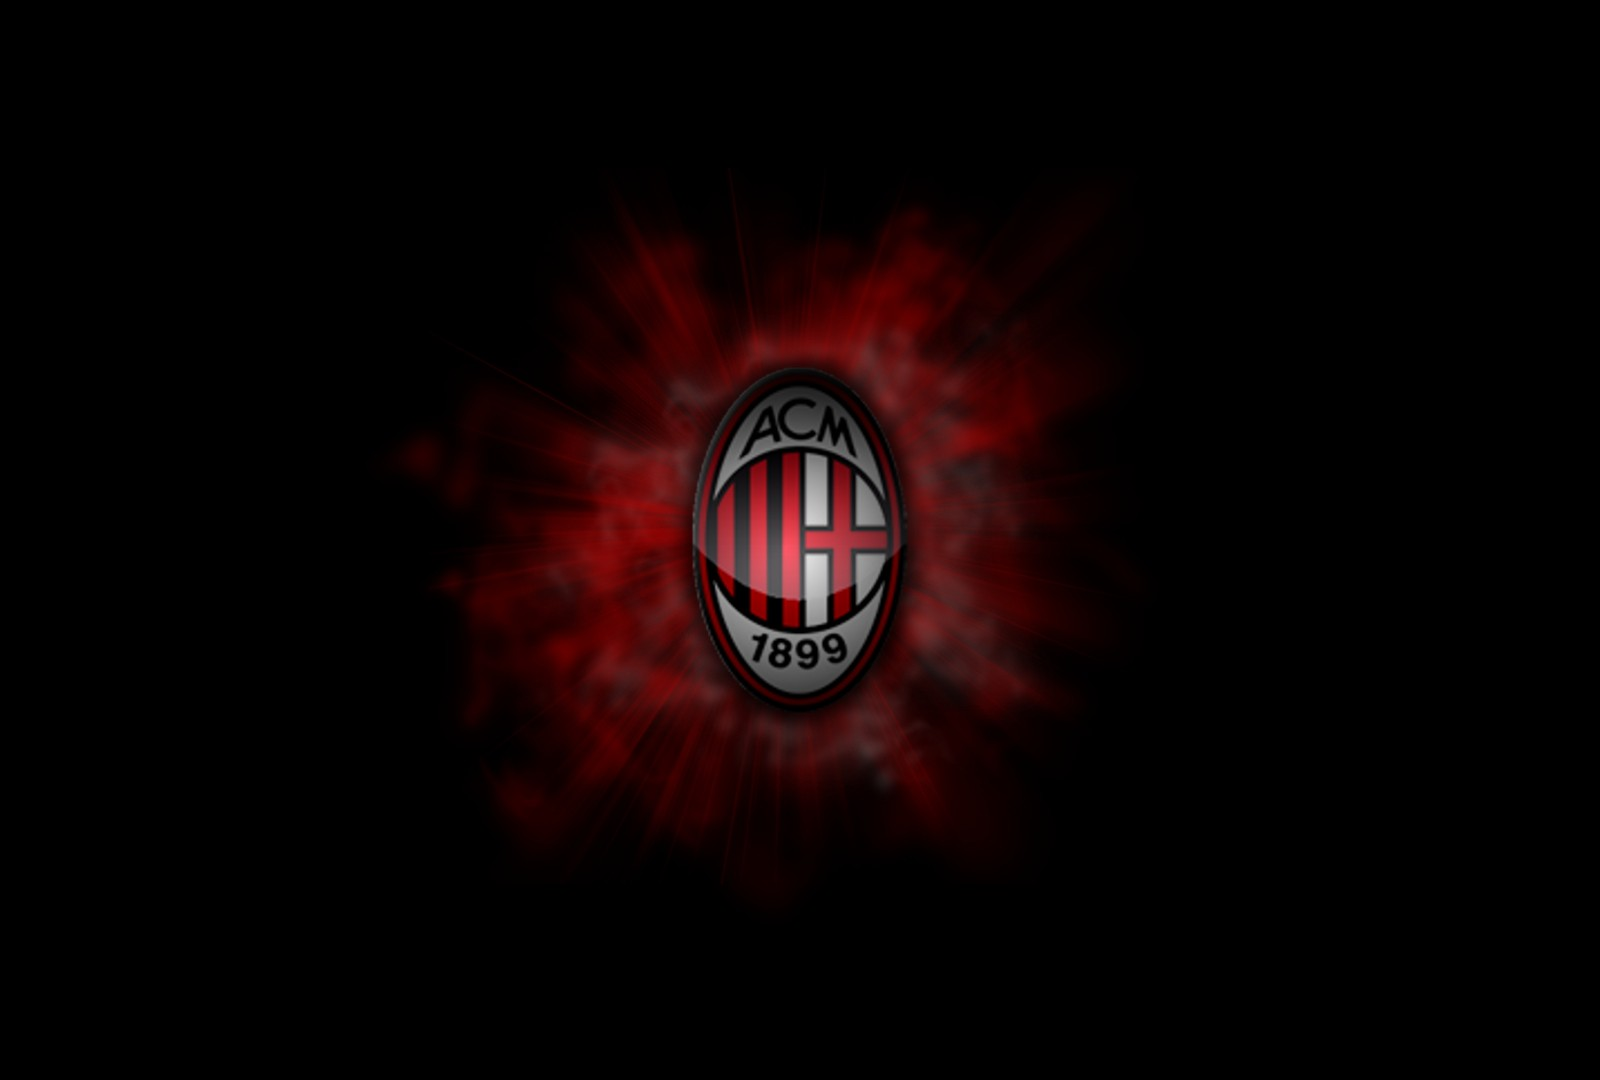 http://2.bp.blogspot.com/-BshTPLJPBNI/UP1zAcmVNmI/AAAAAAAAFIs/kwatMJZPBmk/s1600/AC+Milan+Logo+Wallpaper+High+Definition+2013+7.jpg